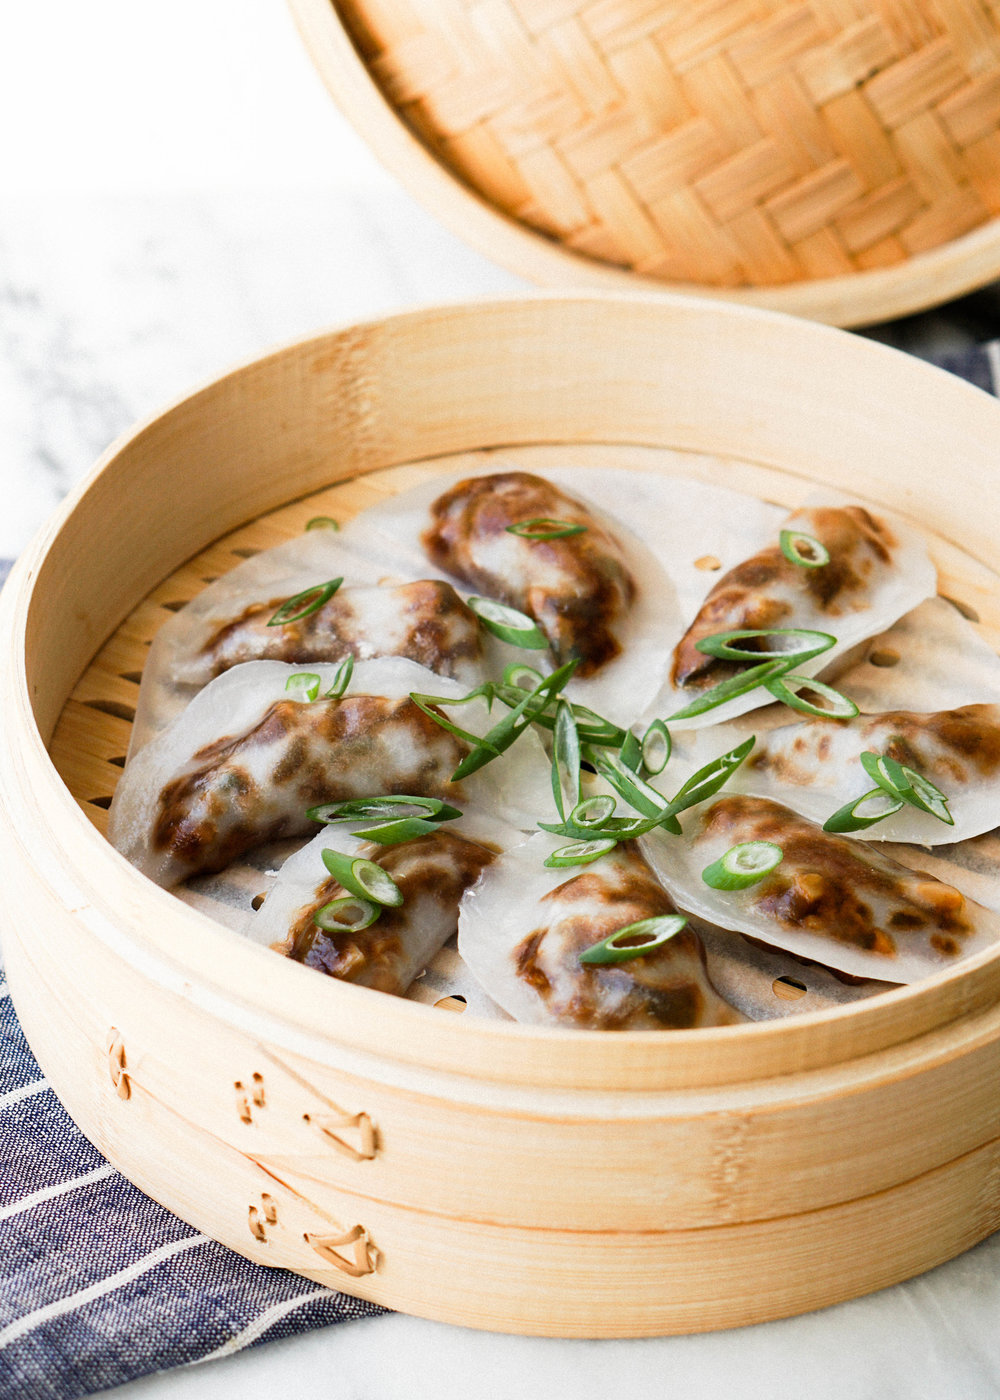 Crystal Mushroom Dumplings // Eat Cho Food